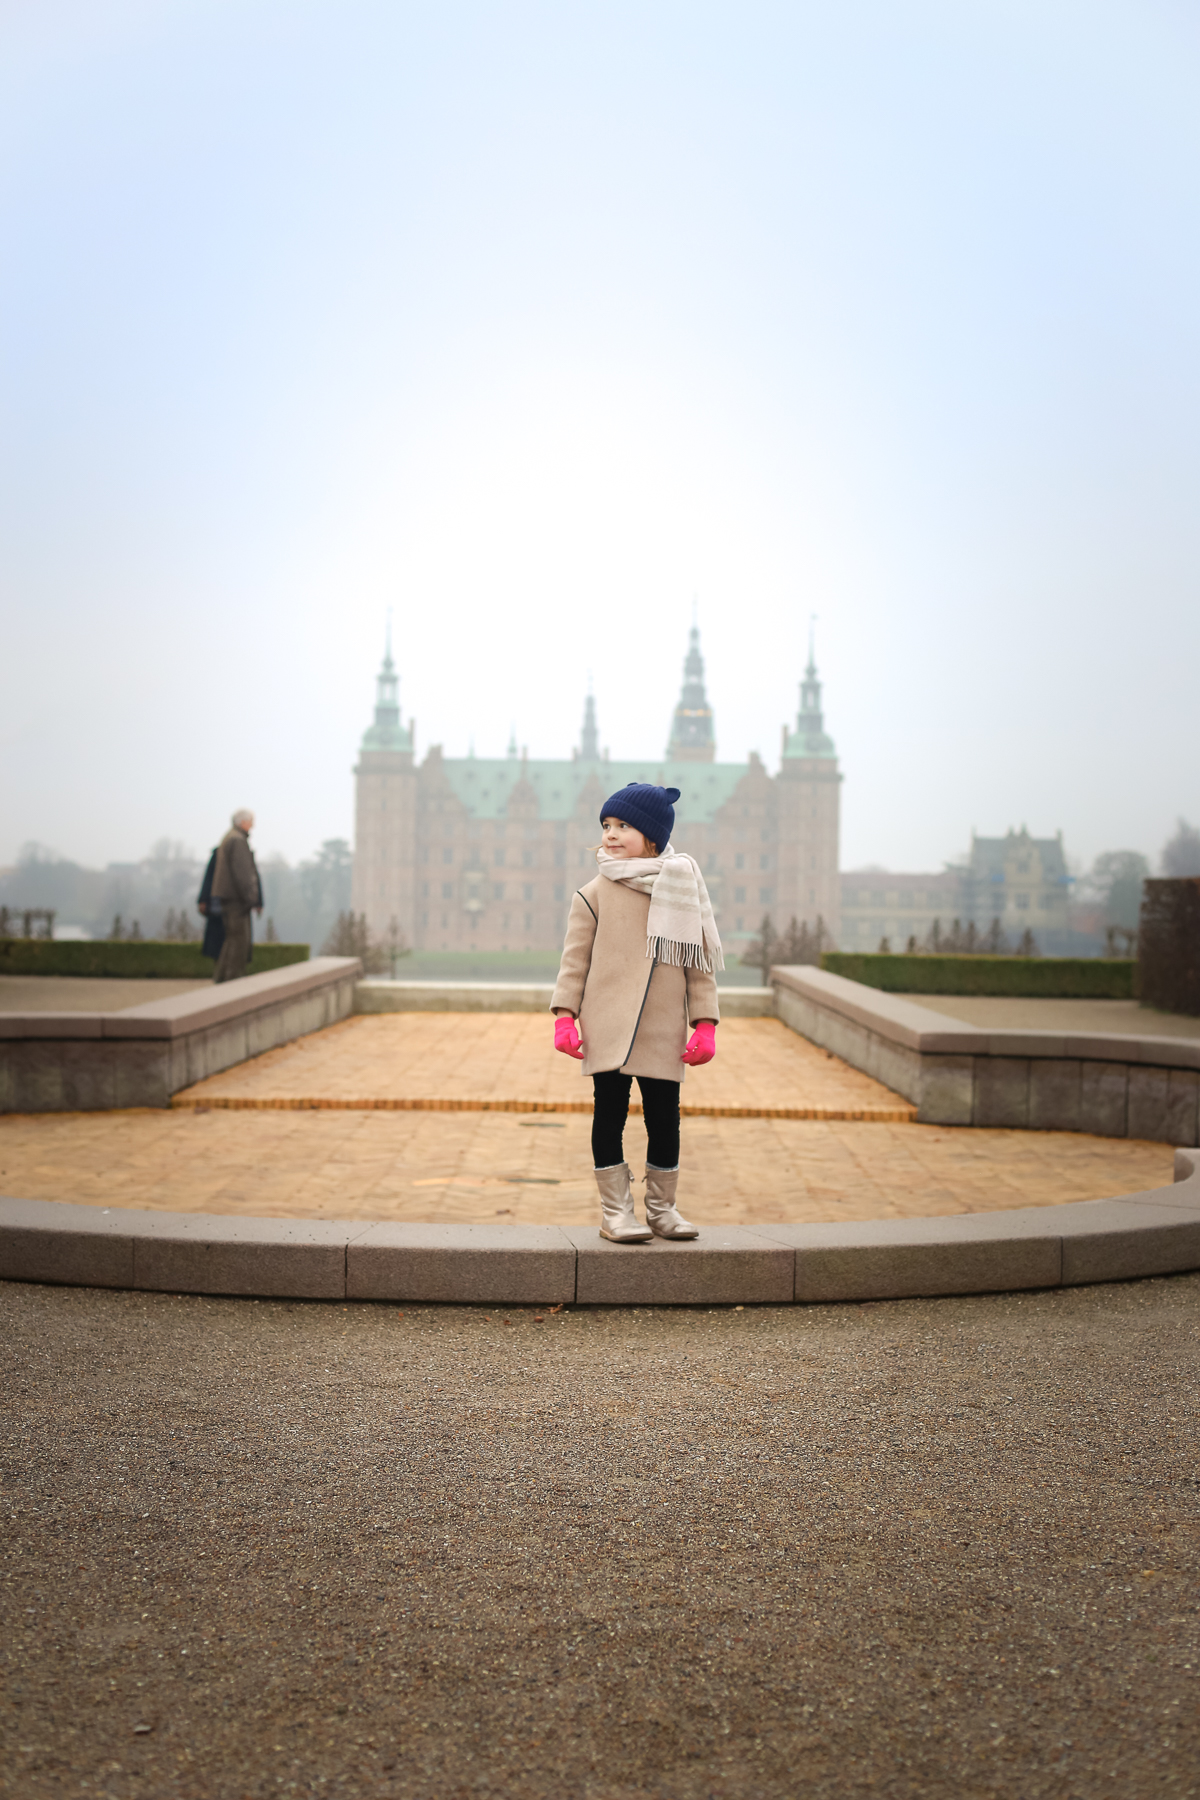 The museum of national history at frederiksborg castle copenhagen - Visiting The Frederiksborg Castle In Hillerod Denmark Home To The One Of The Museum S